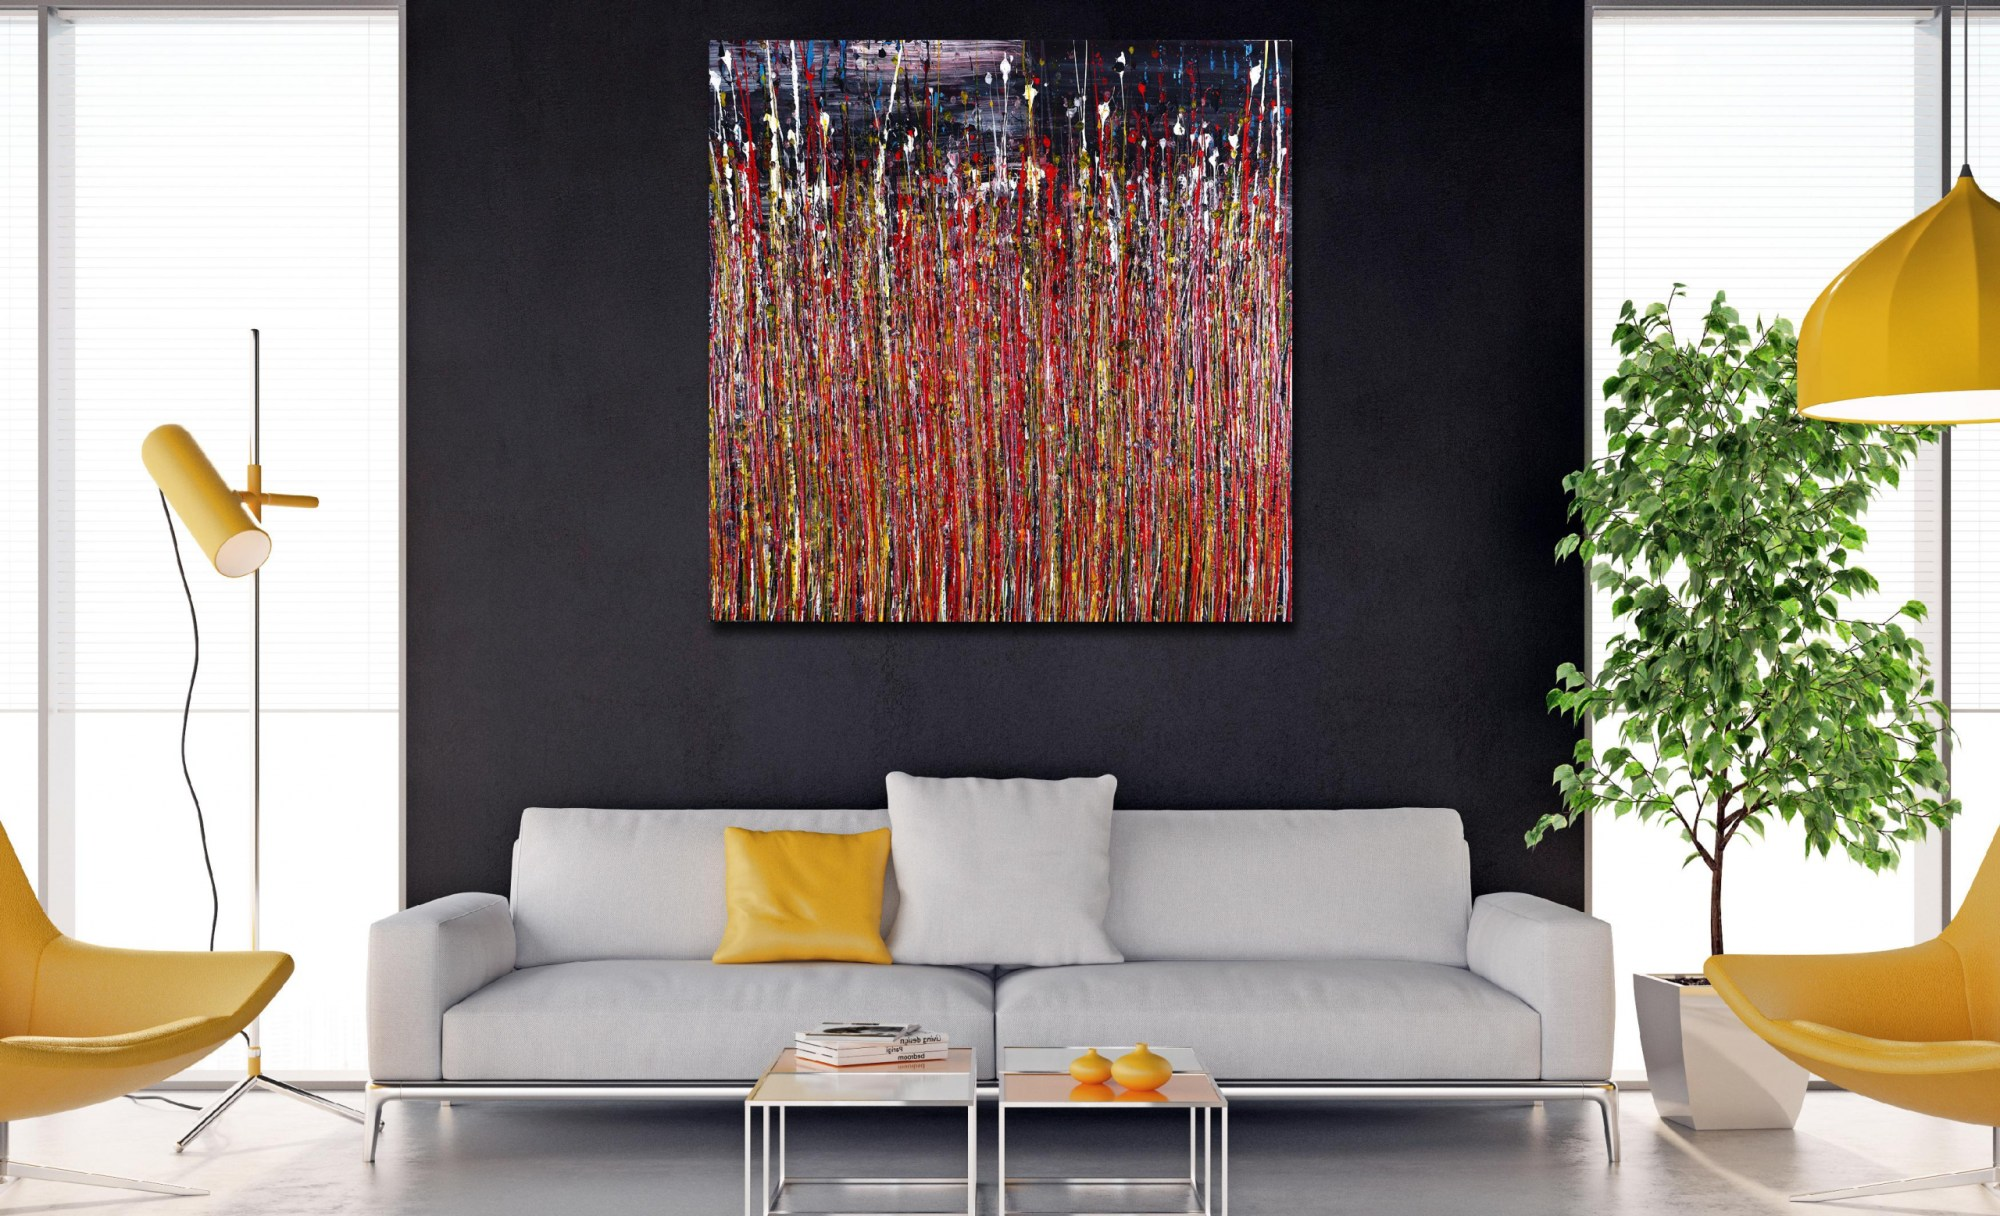 Room View / Reflection of colors 2 (2021) / 36 x 36 inches / Nestor Toro